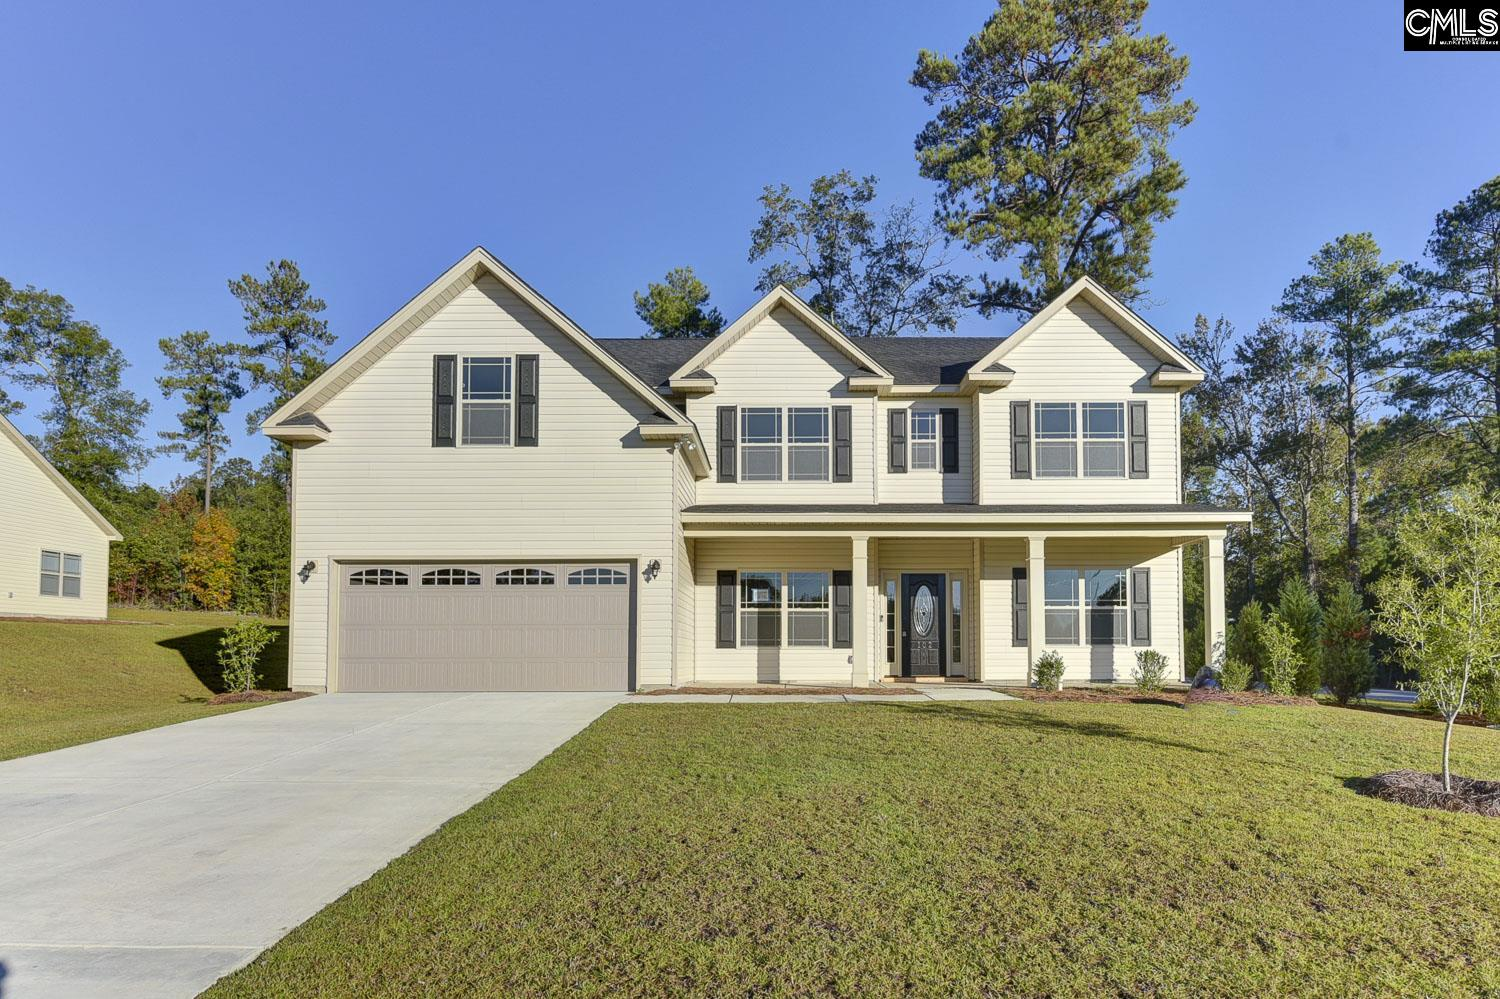 102 Tall Pines Gaston, SC 29053